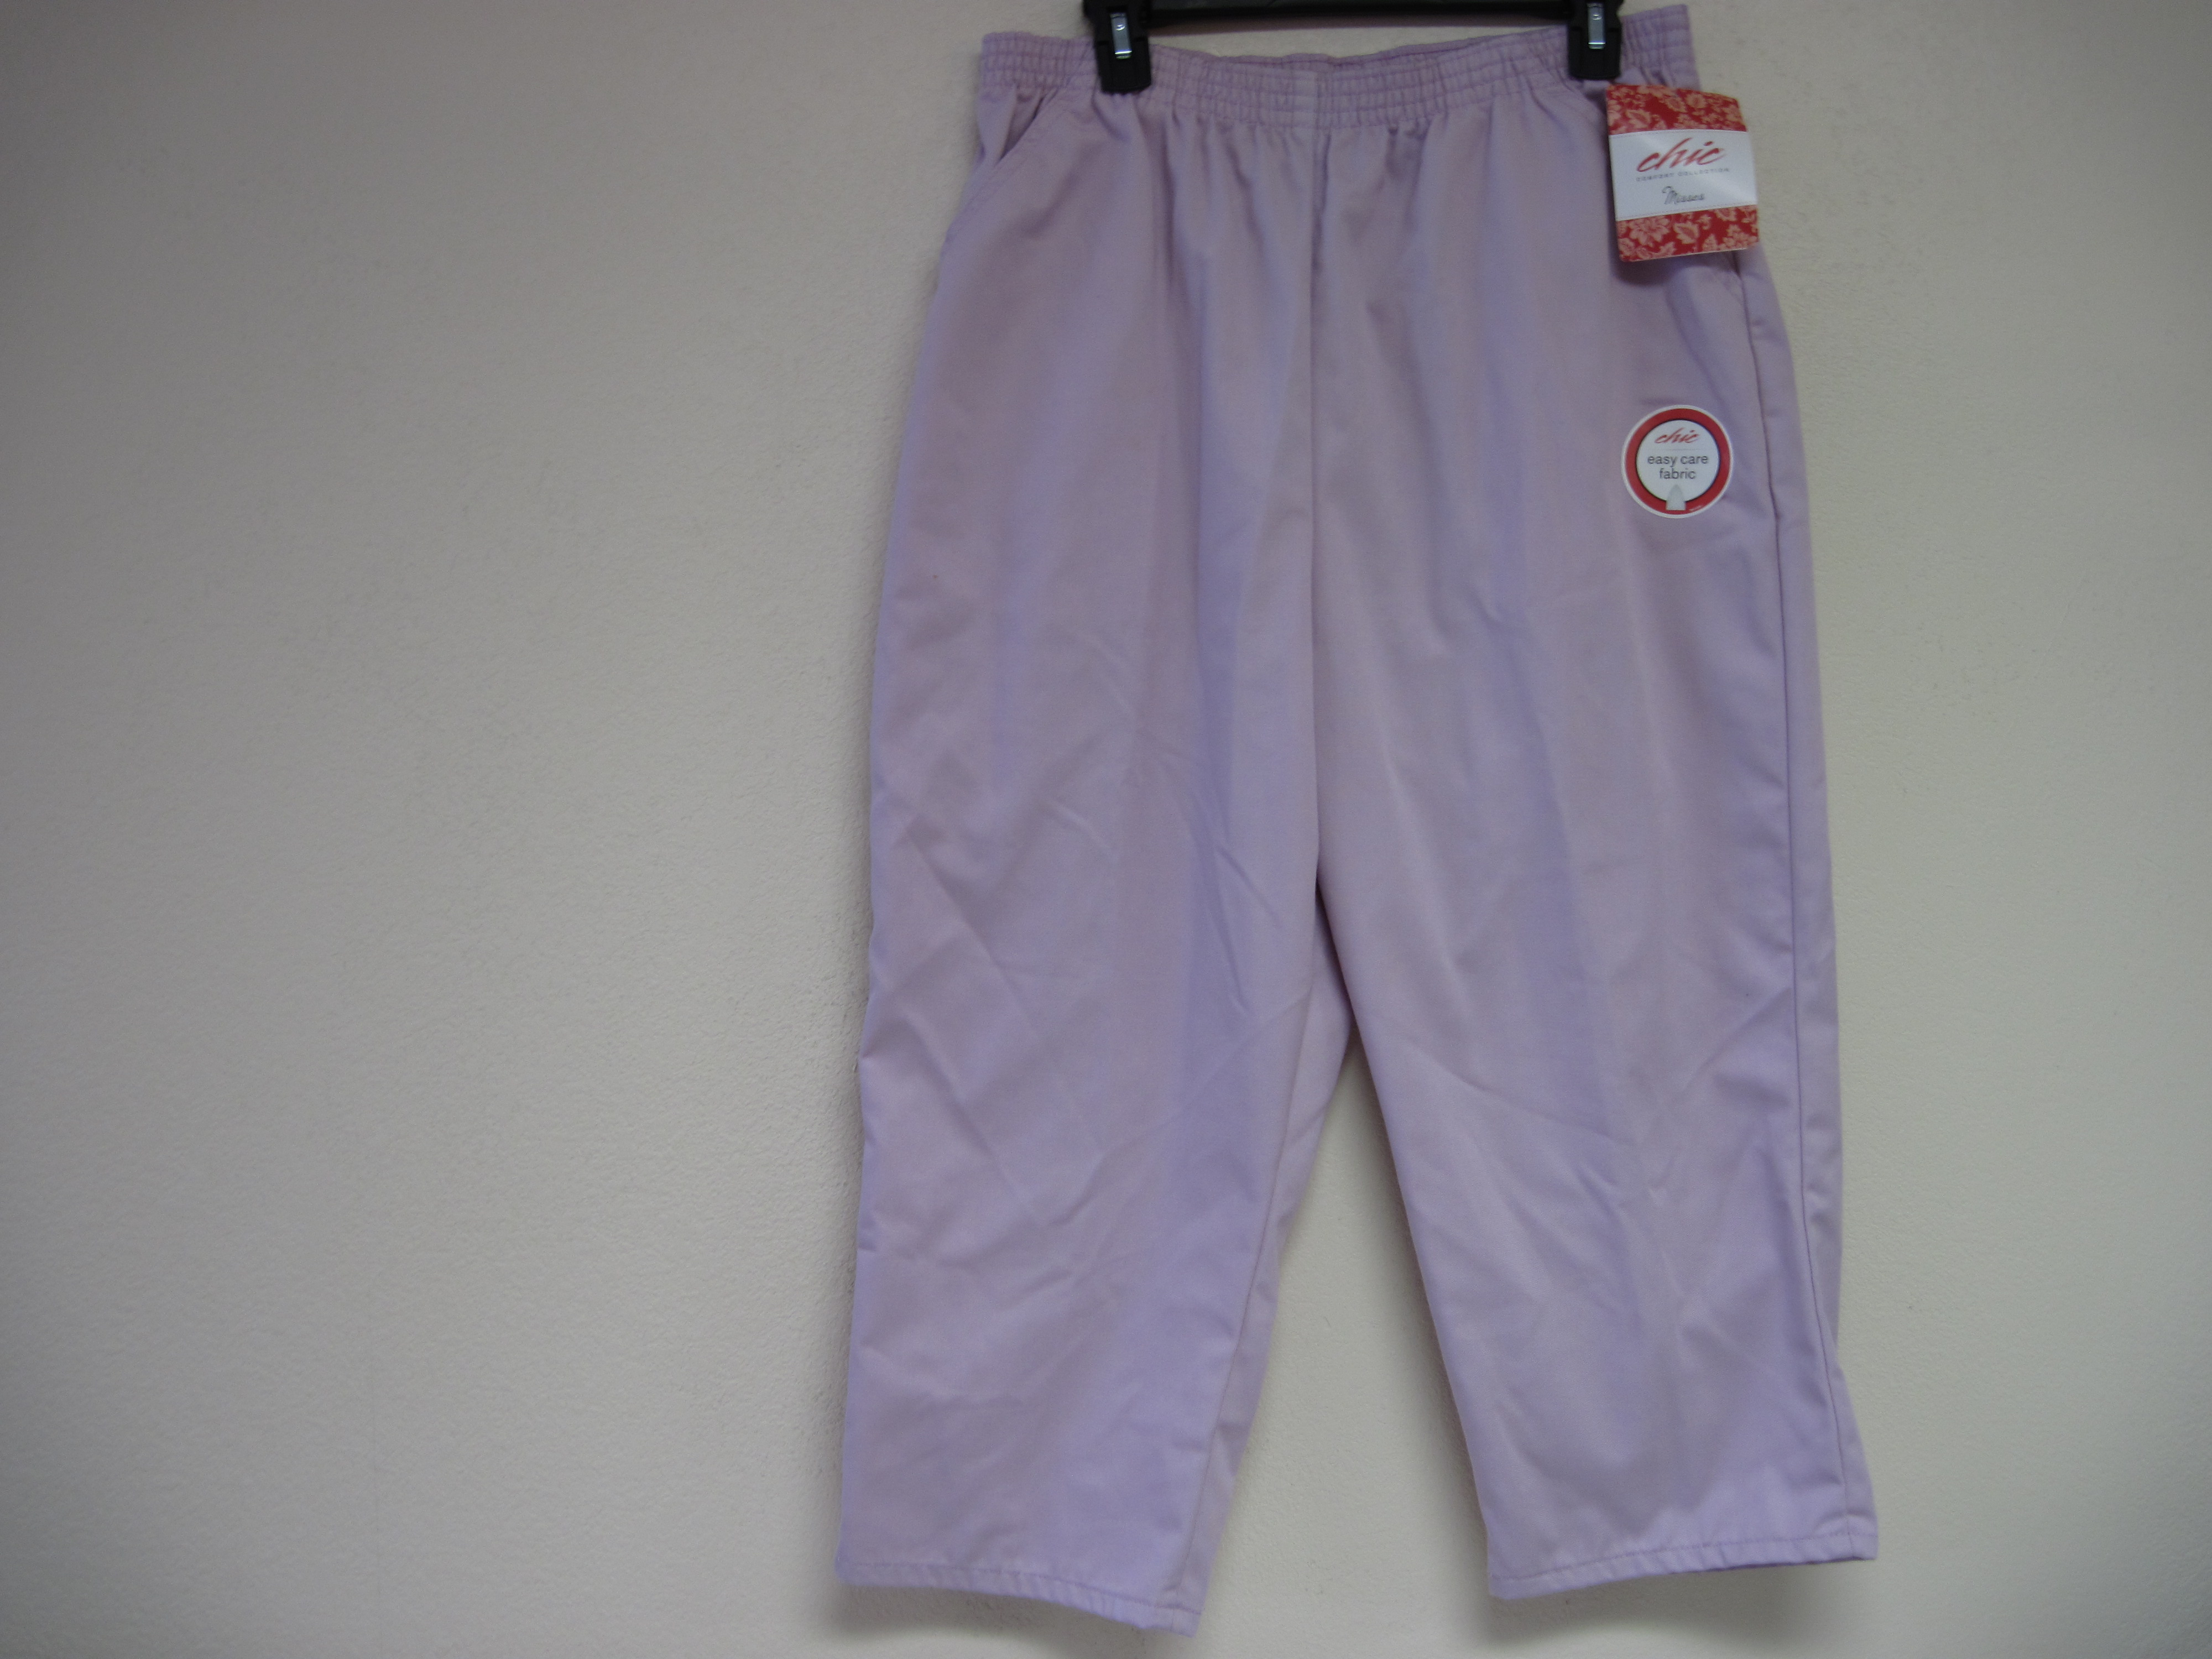 Chic Sz 18 Average Misses Capri (purple)